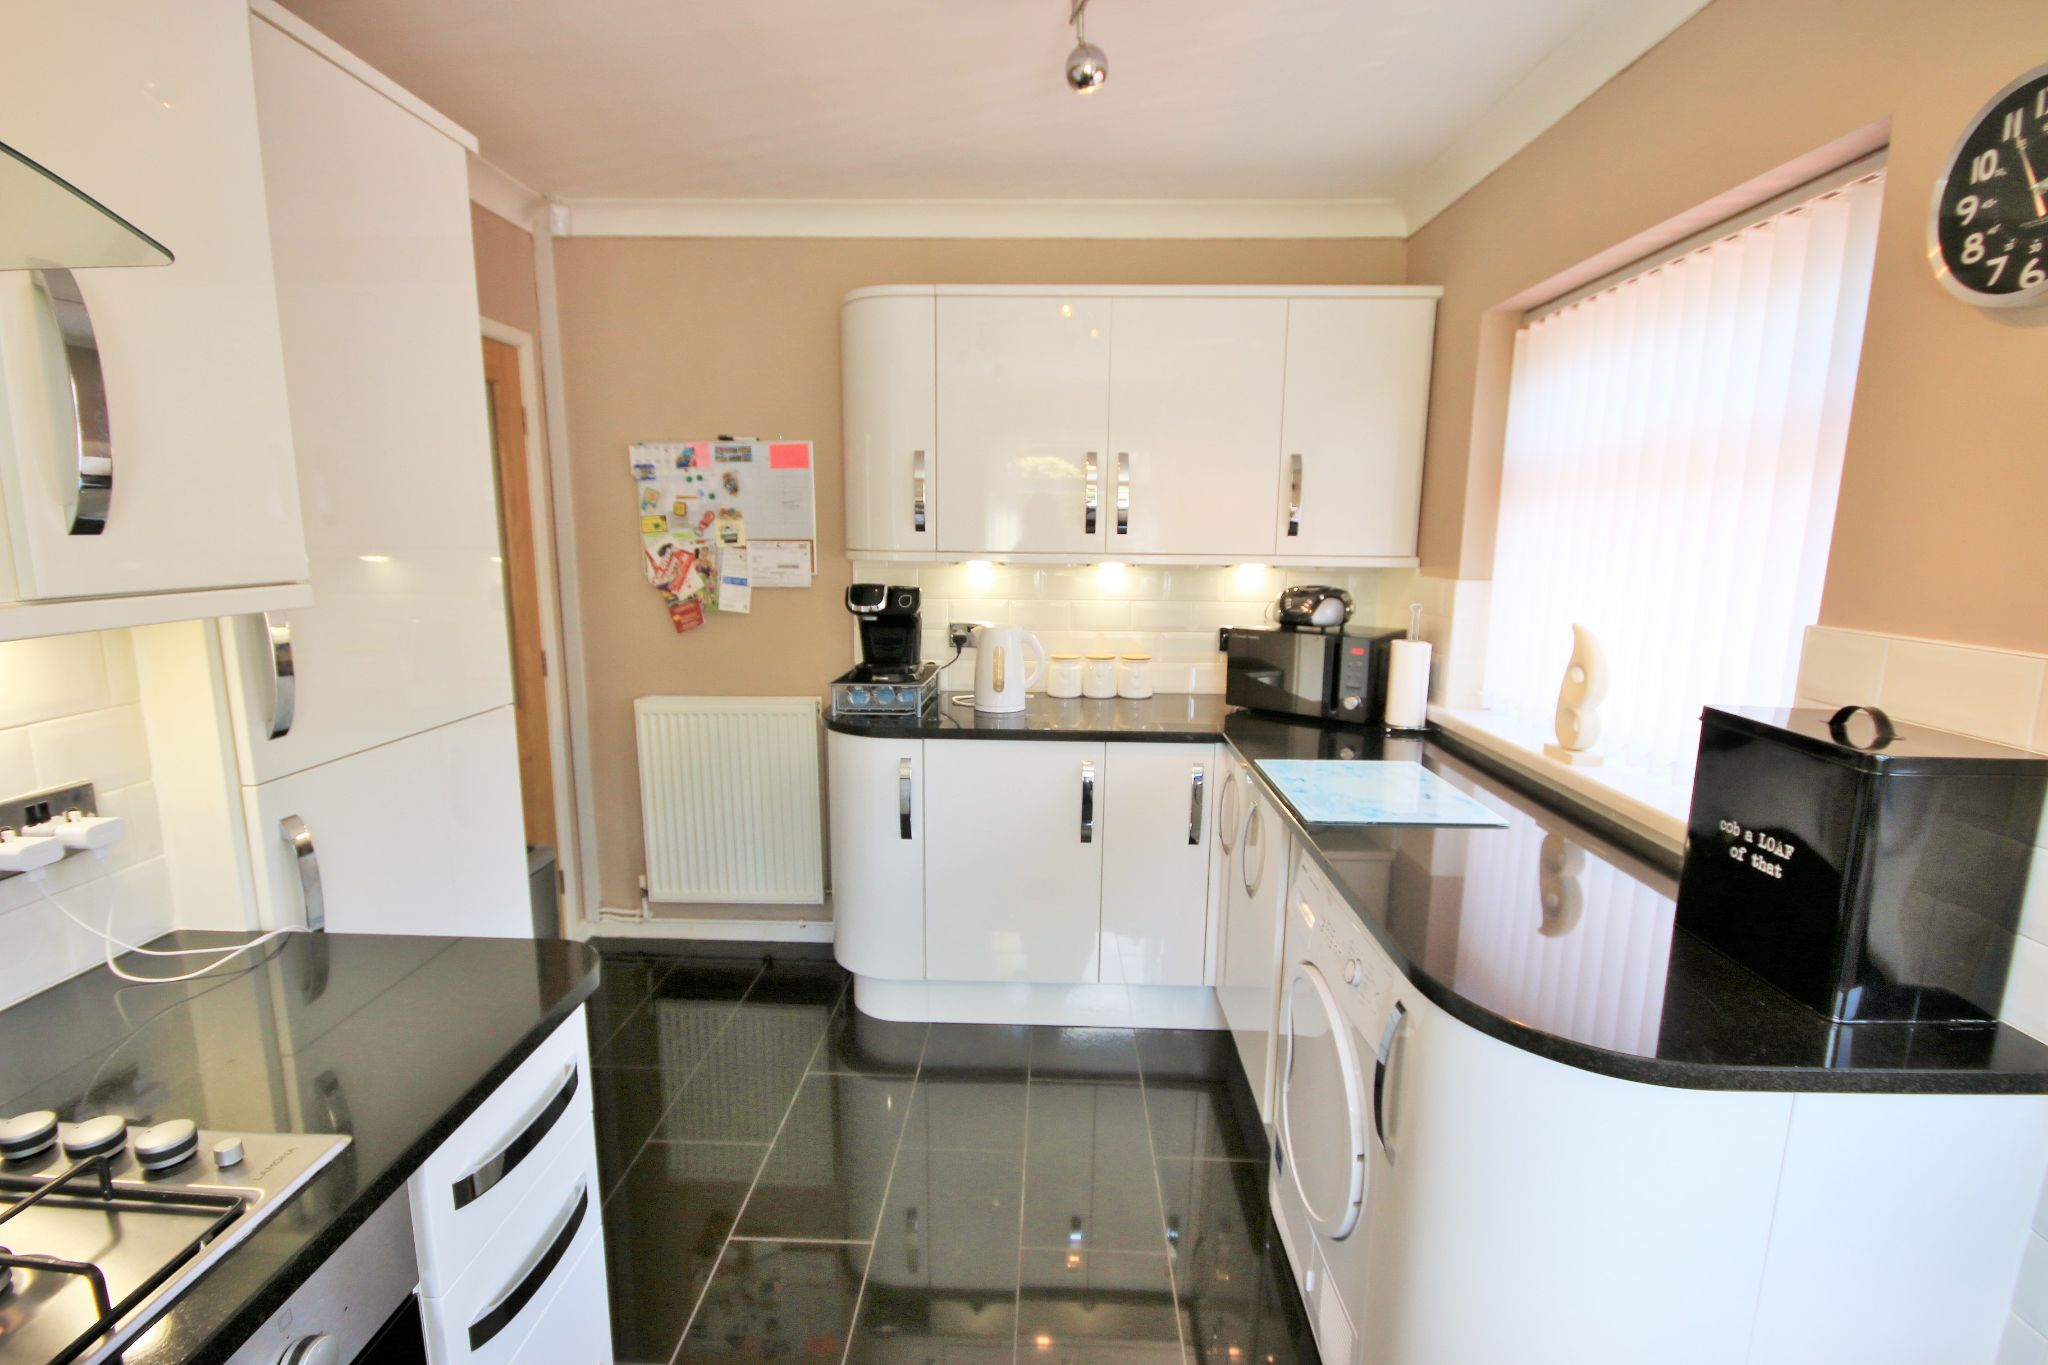 2 Bedroom Semi-detached Bungalow For Sale - Photograph 6